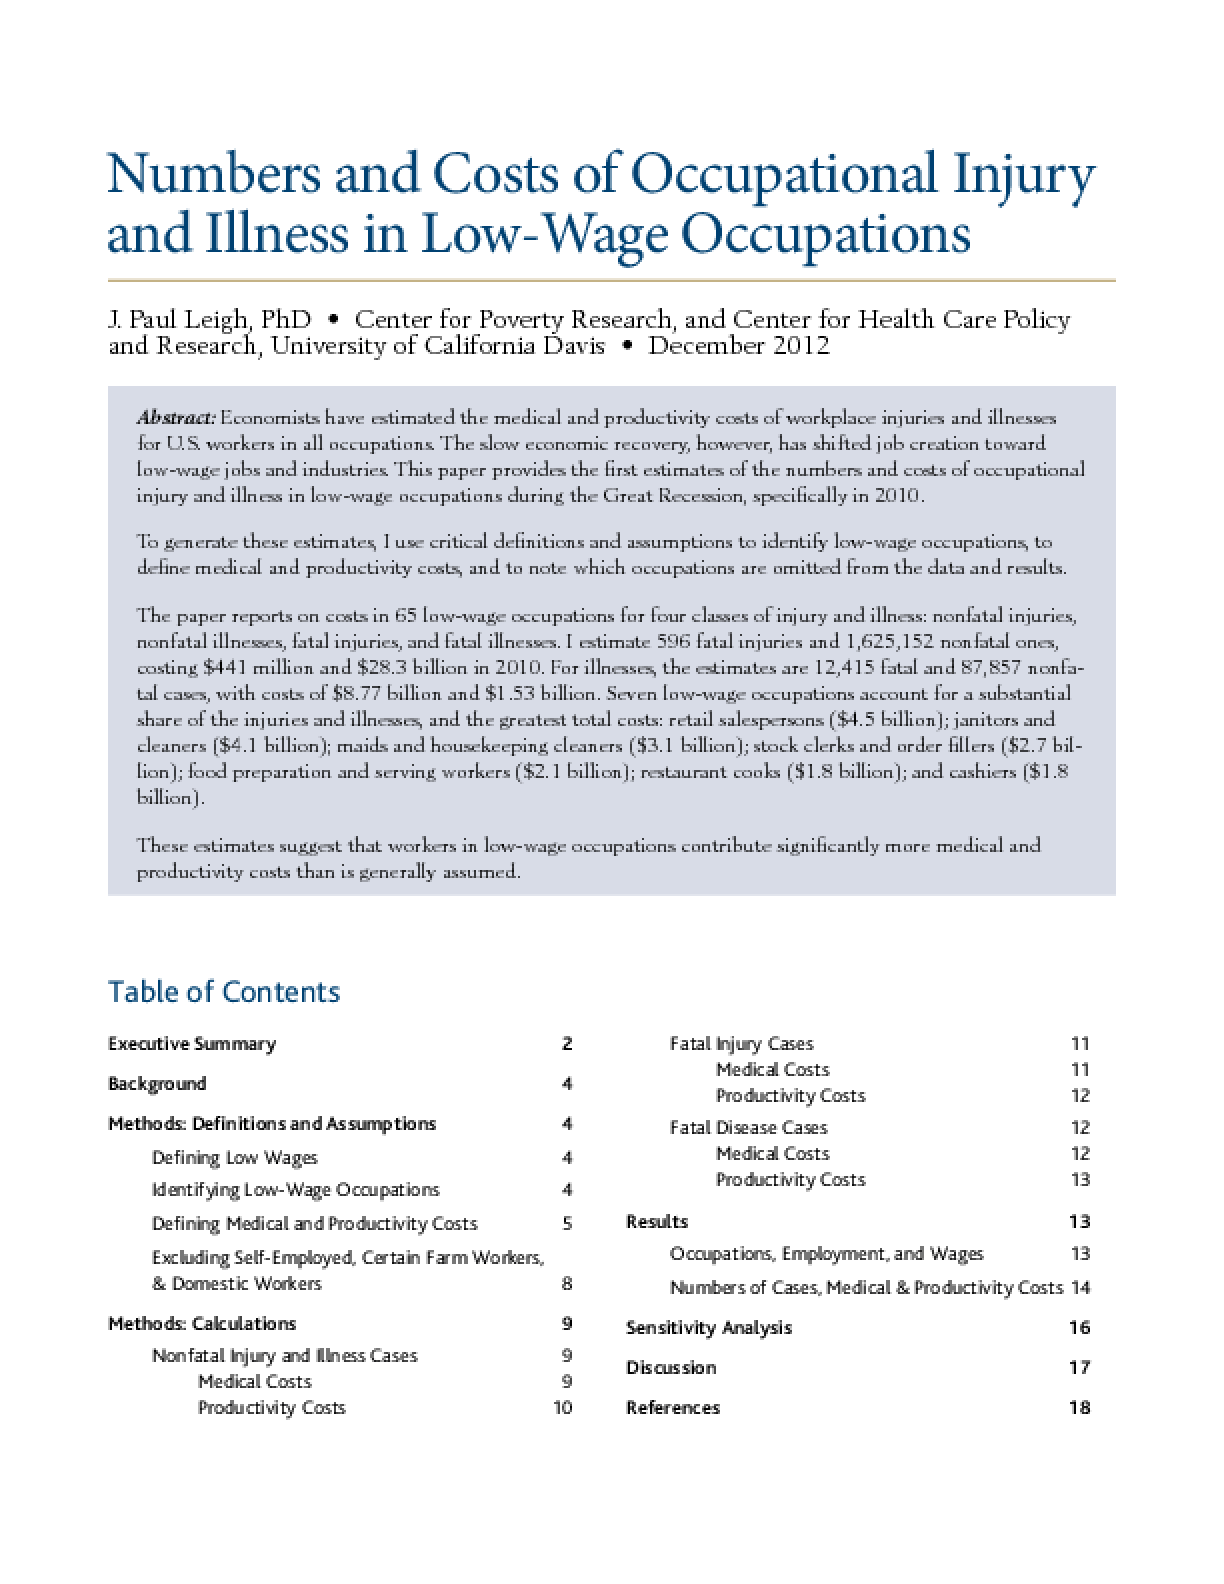 Numbers and Costs of Occupational Injury and Illness in Low-Wage Occupations